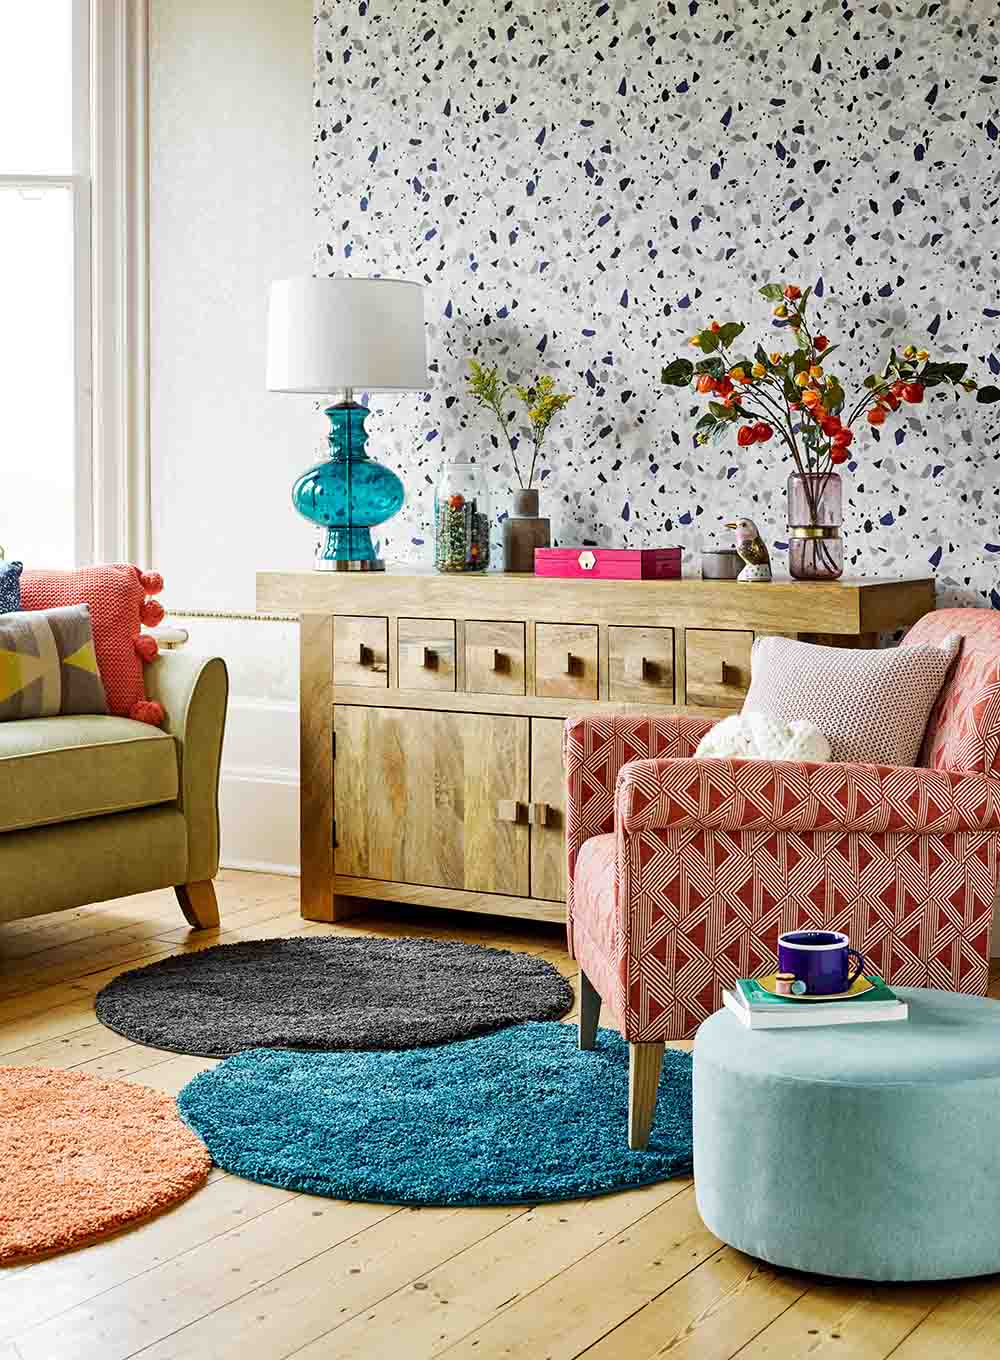 Mantis Sideboard with speckled wallpaper